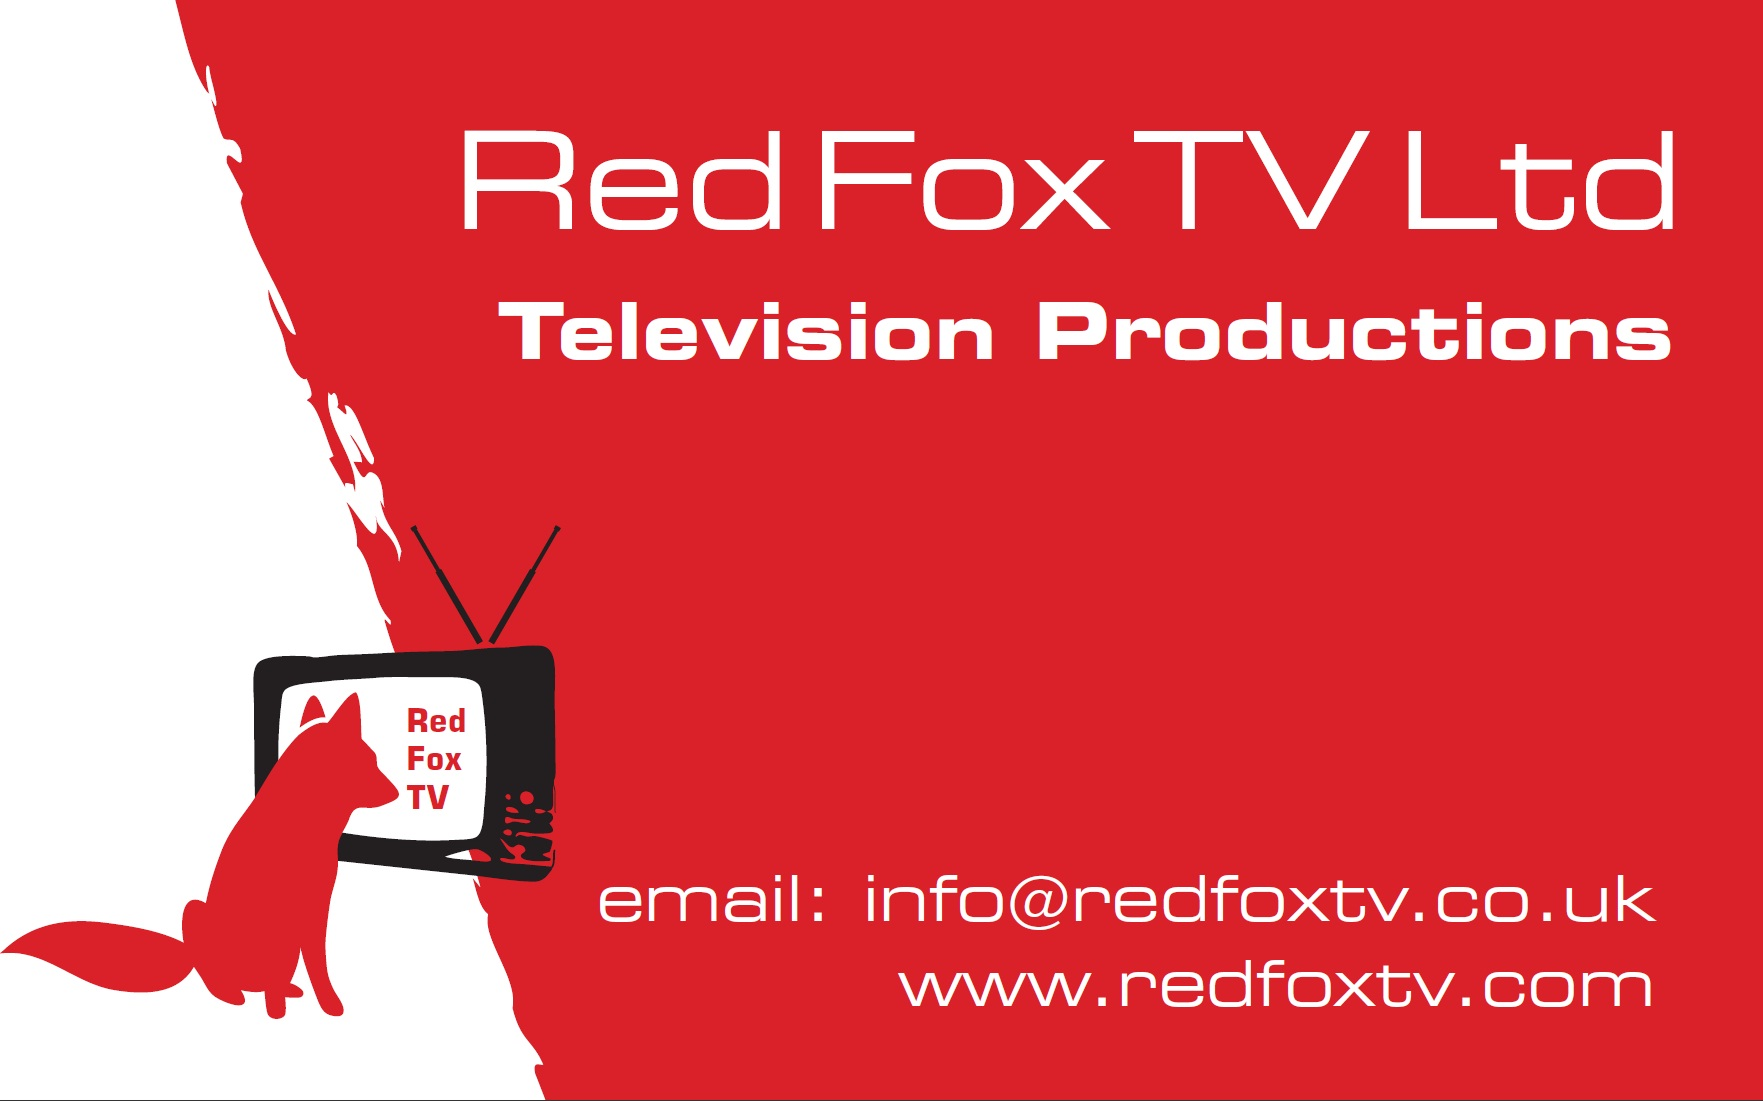 red fox tv. Black Bedroom Furniture Sets. Home Design Ideas